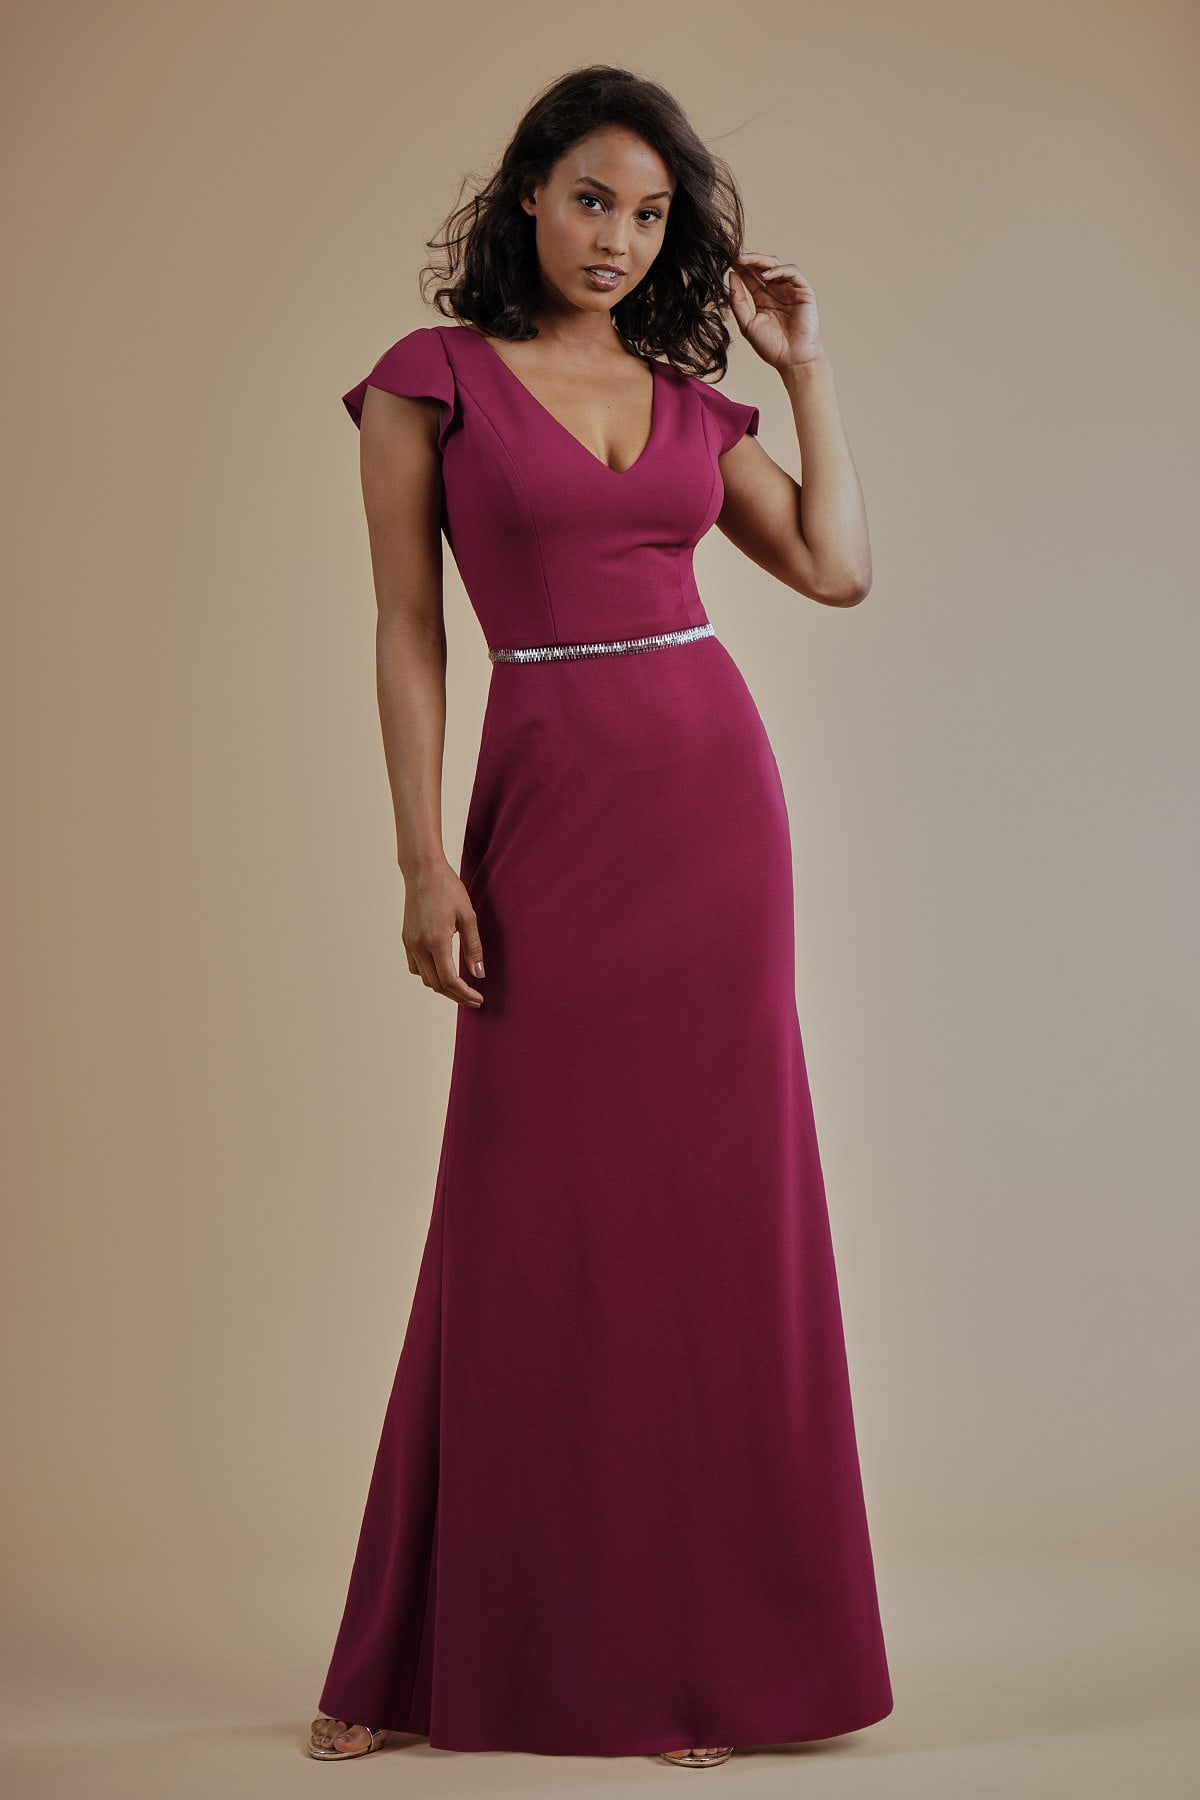 Belsoie bridesmaid dresses